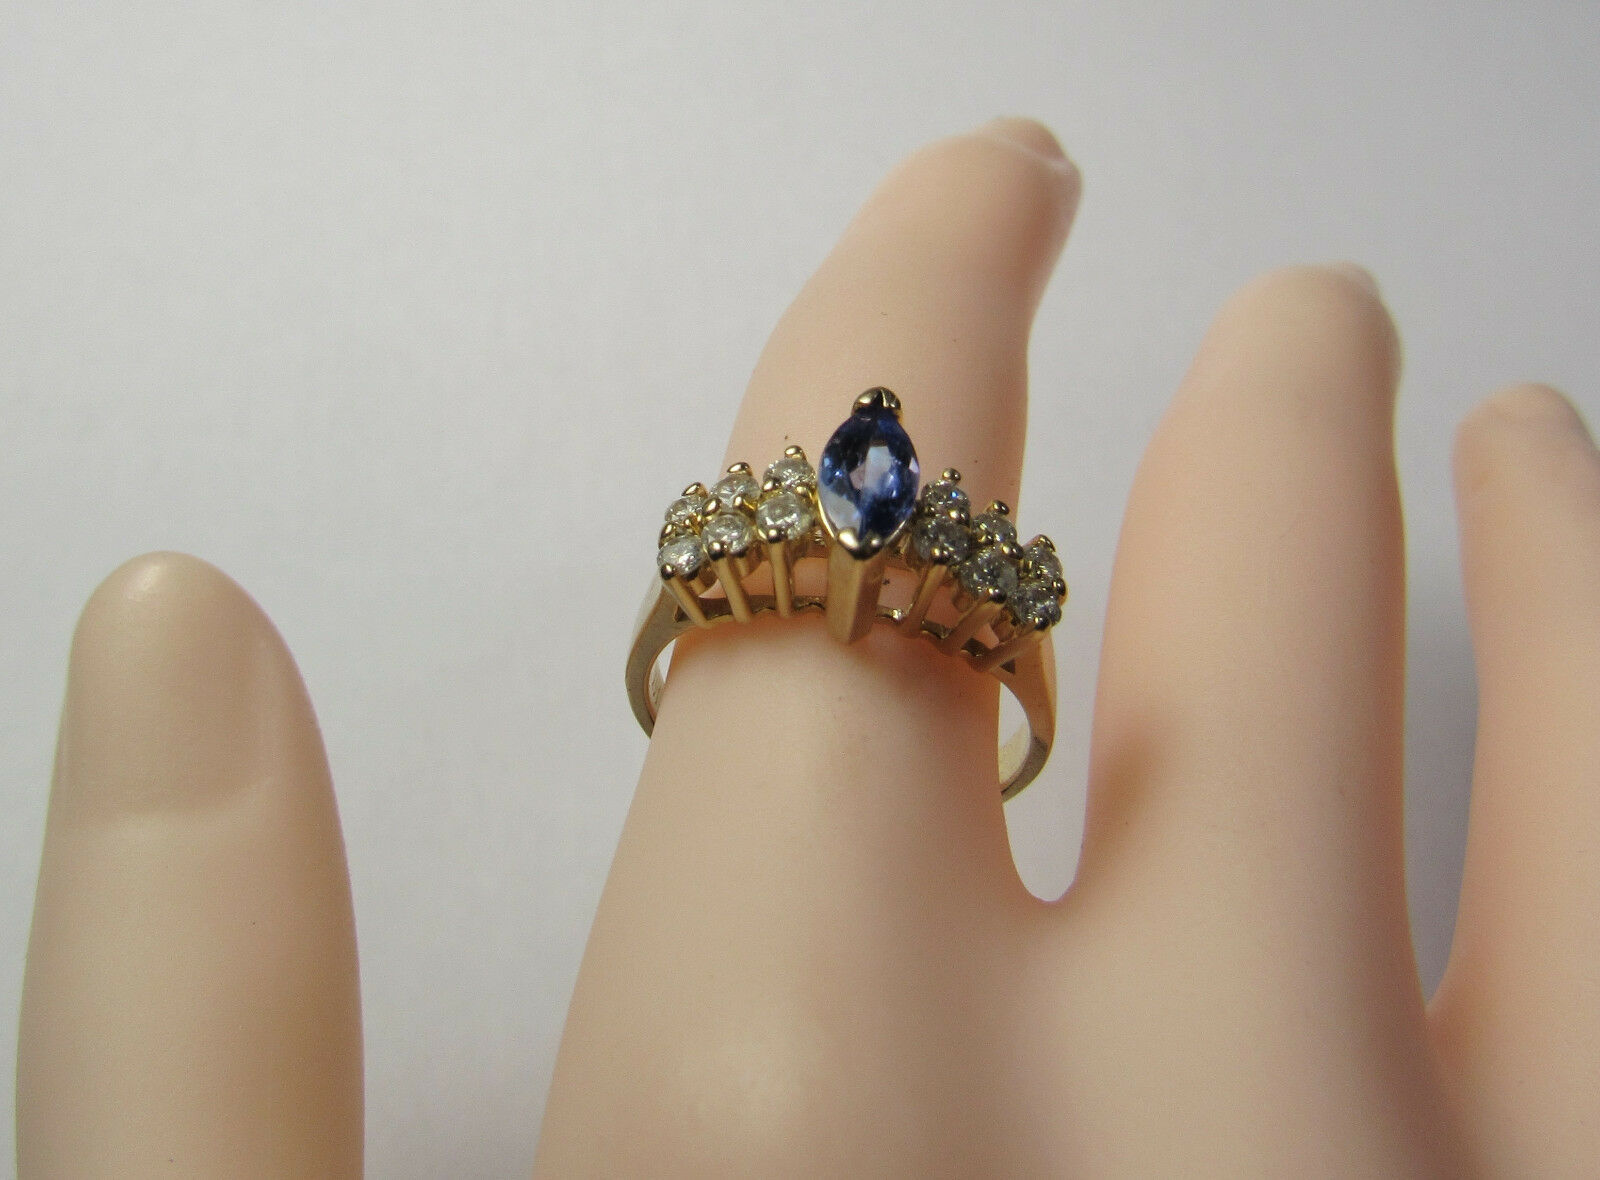 Primary image for VTG 14K 14KT Yellow Gold 1.15 Carat Tanzanite Marquise Diamond Size 6.25 Ring BH